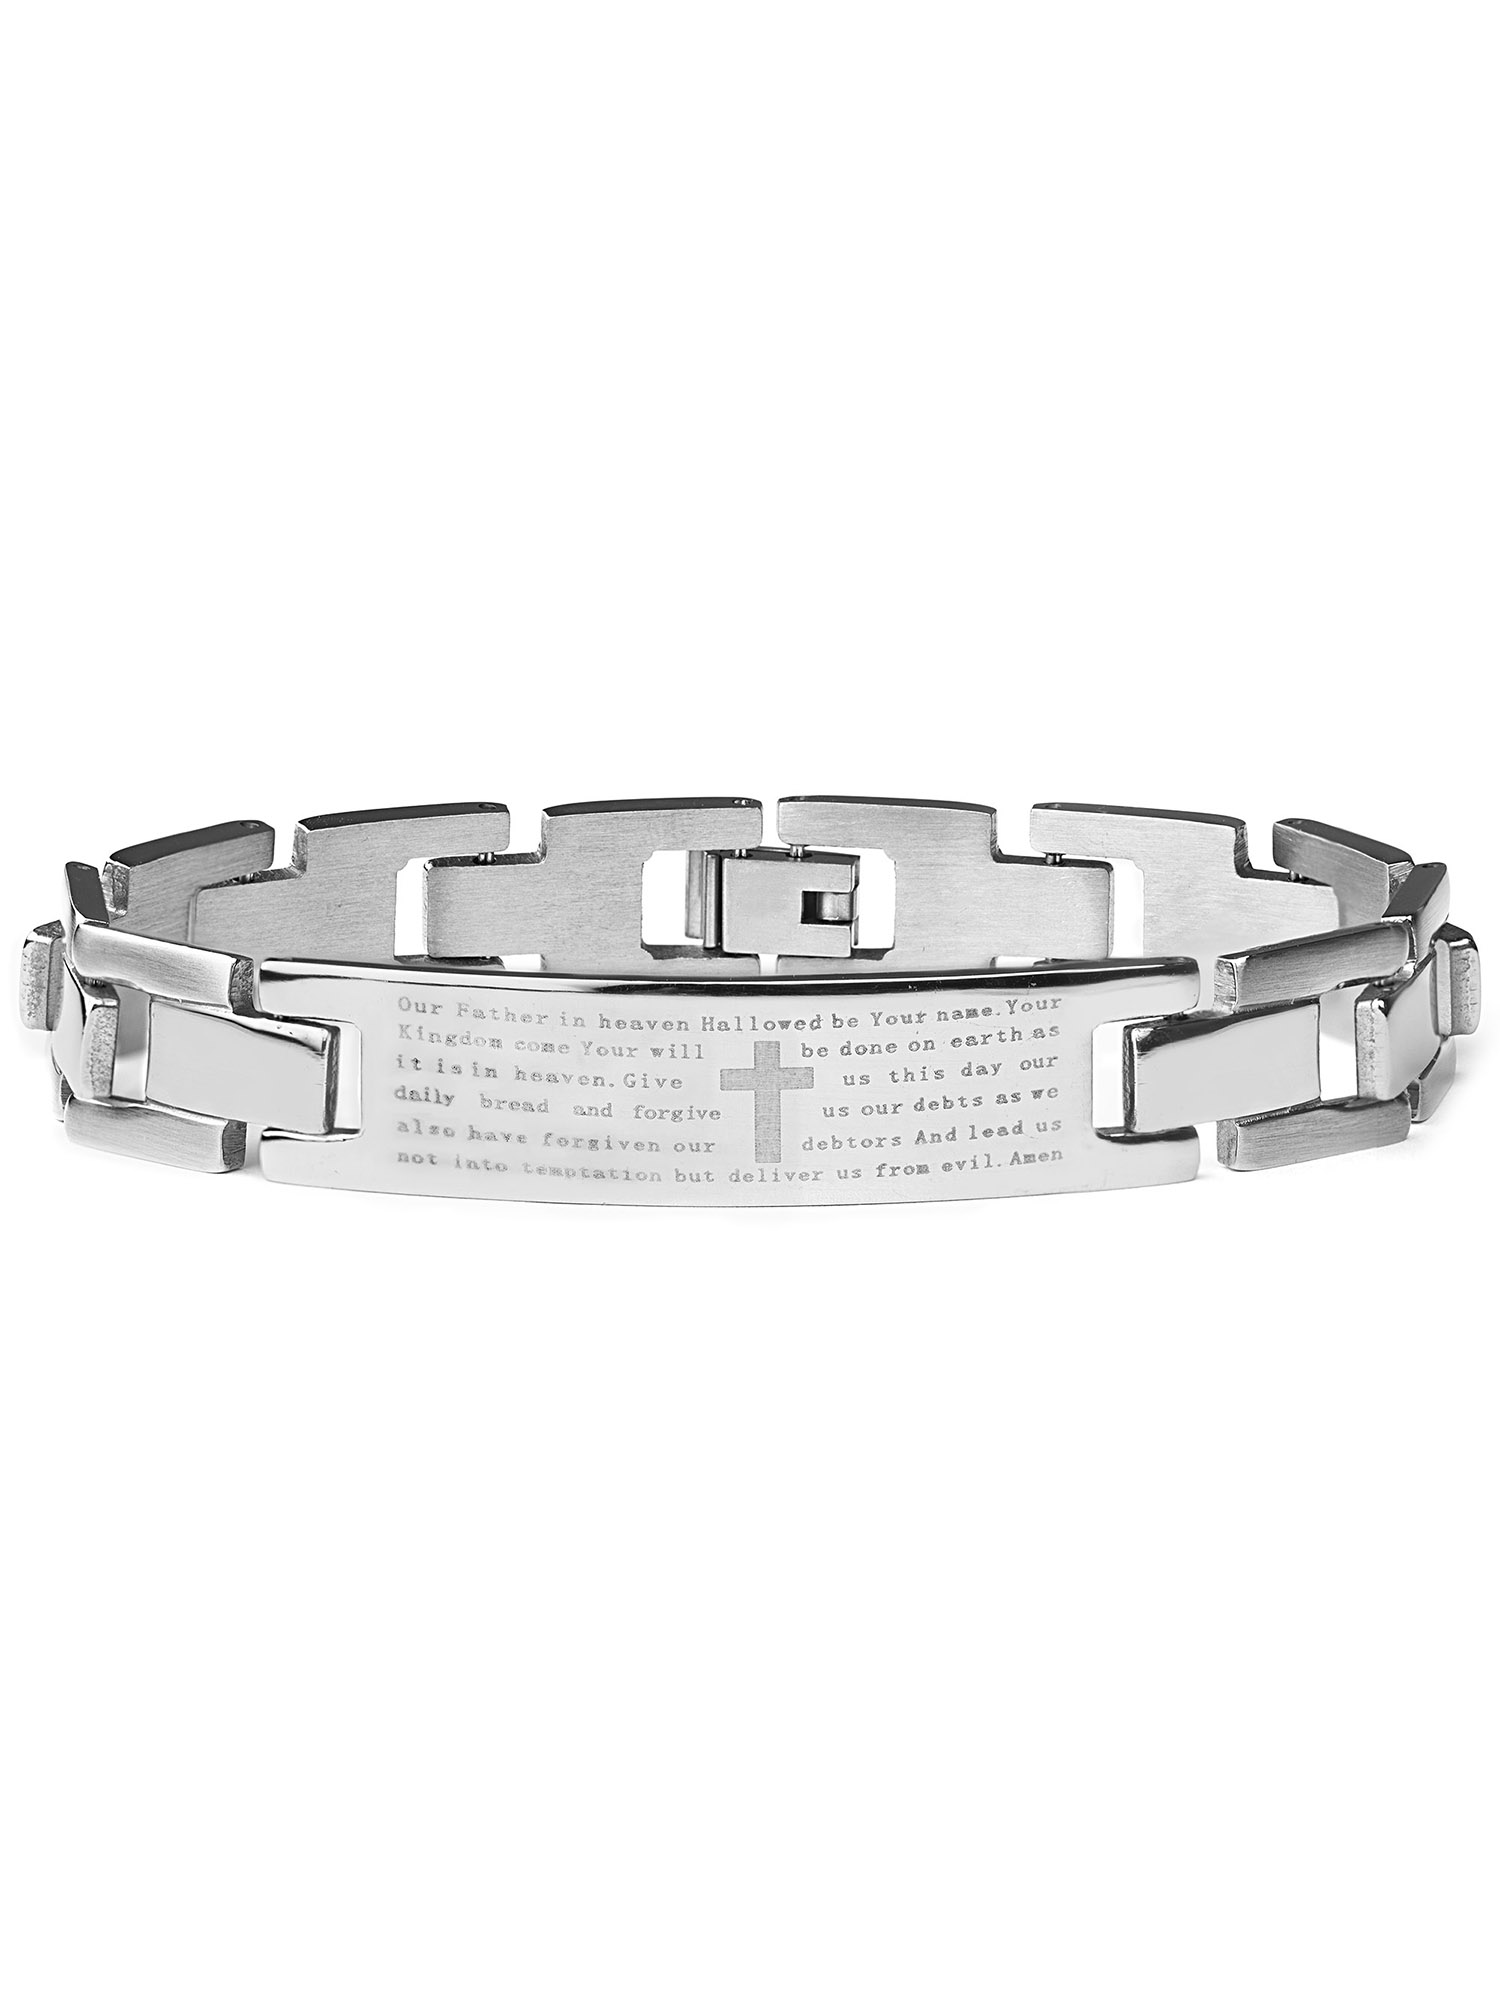 Stainless Steel Men's Lord's Prayer ID Bracelet 8.5 Inches